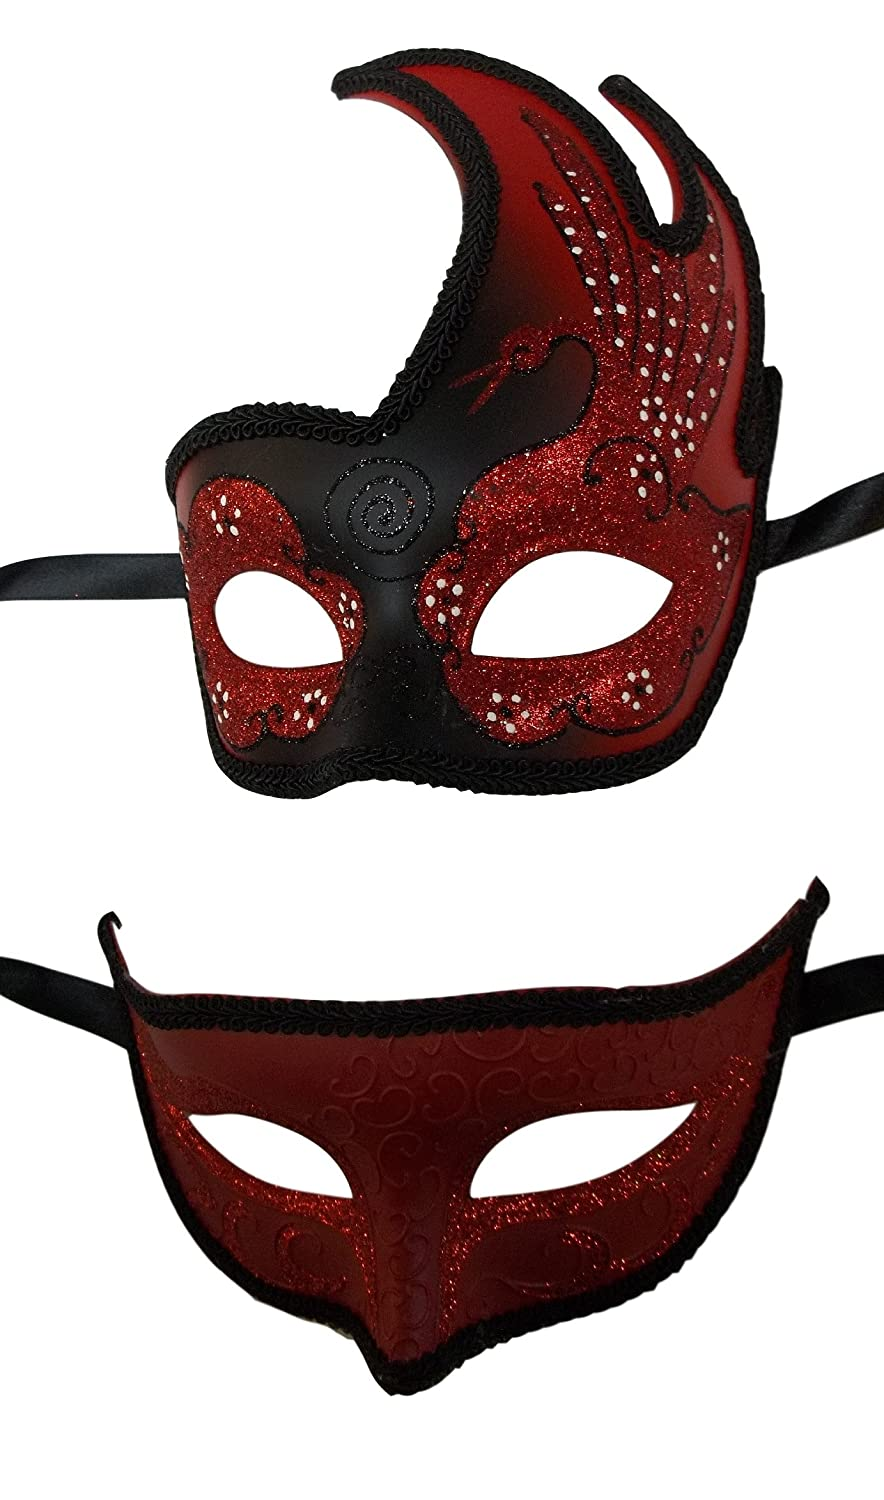 Exceptional MGPS Black Red Masquerade Couples Swan Mask Prom Masks Man Woman At Amazon  Womenu0027s Clothing Store: